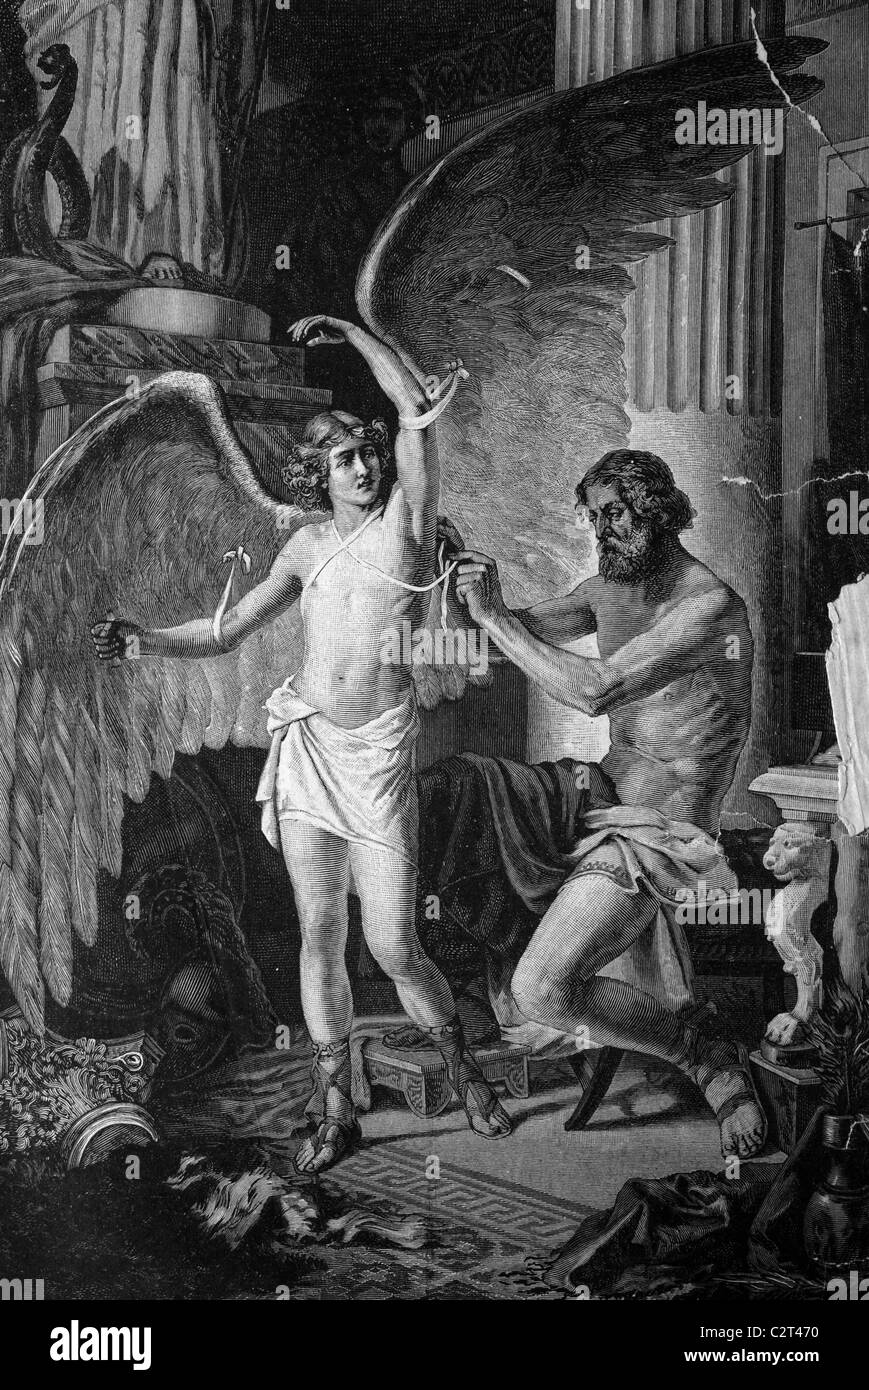 Myths of Ancient Greece: Daedalus and Icarus 74